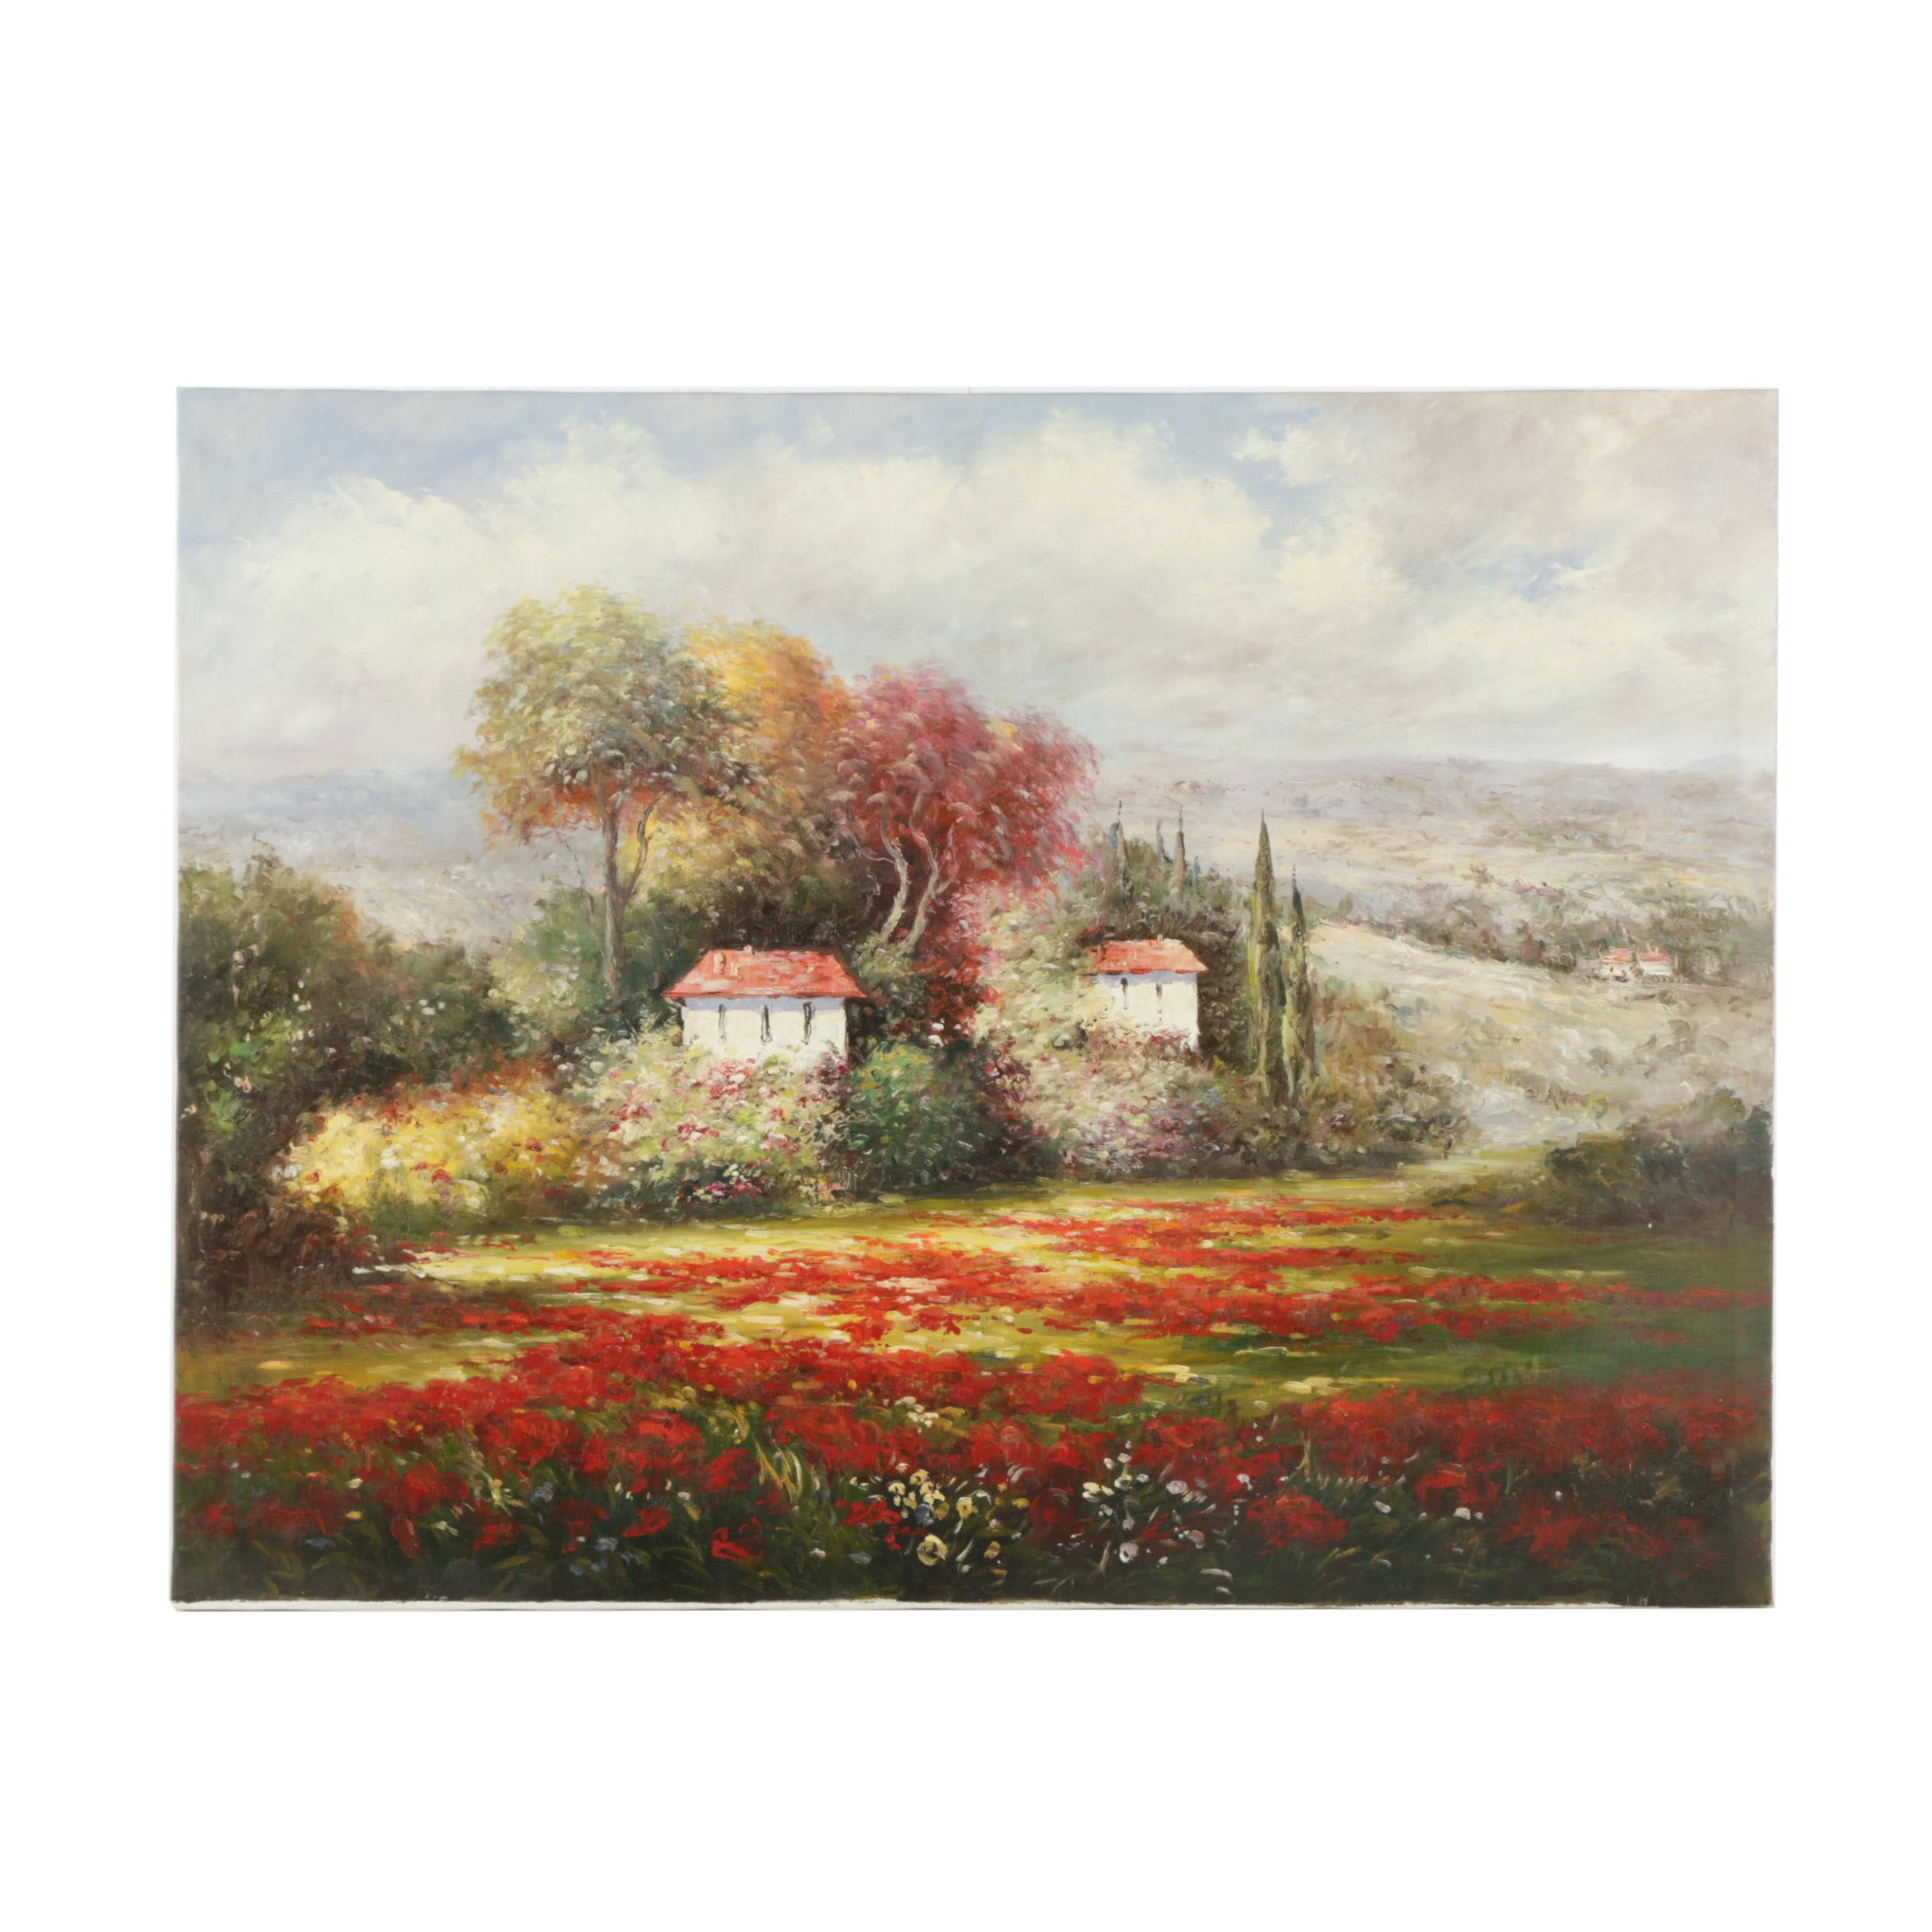 Oil Painting on Canvas of Idyllic Landscape